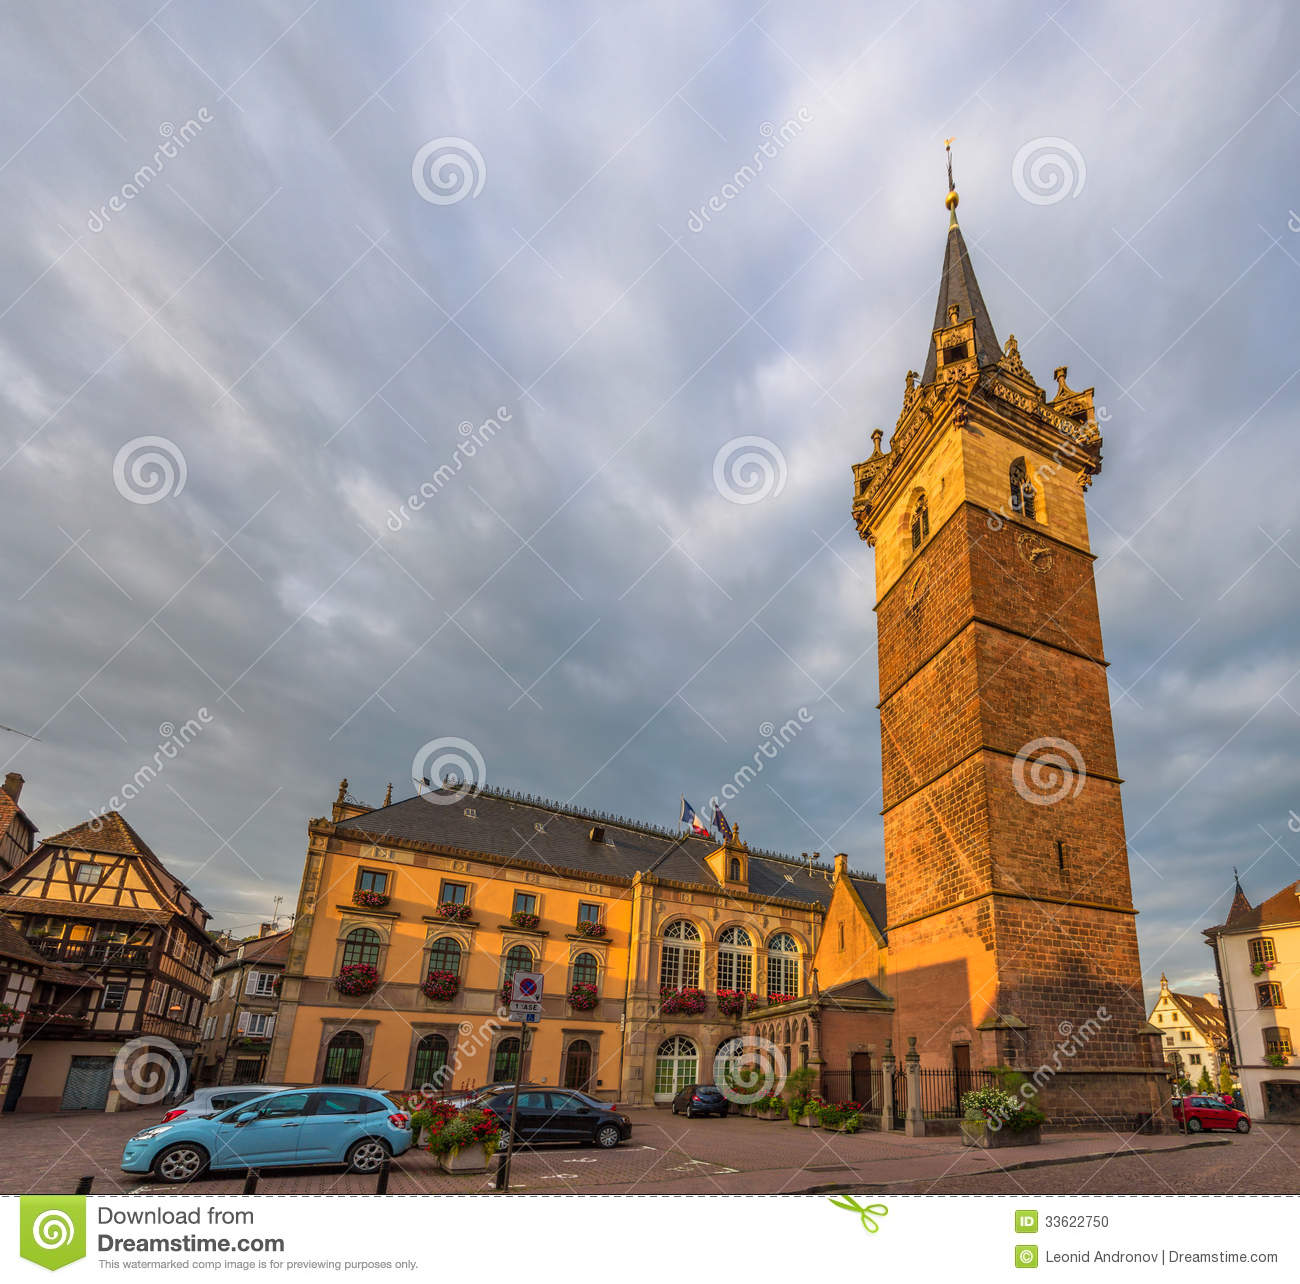 Watchtower and city hotel in obernai france stock photo for Designhotel elsass